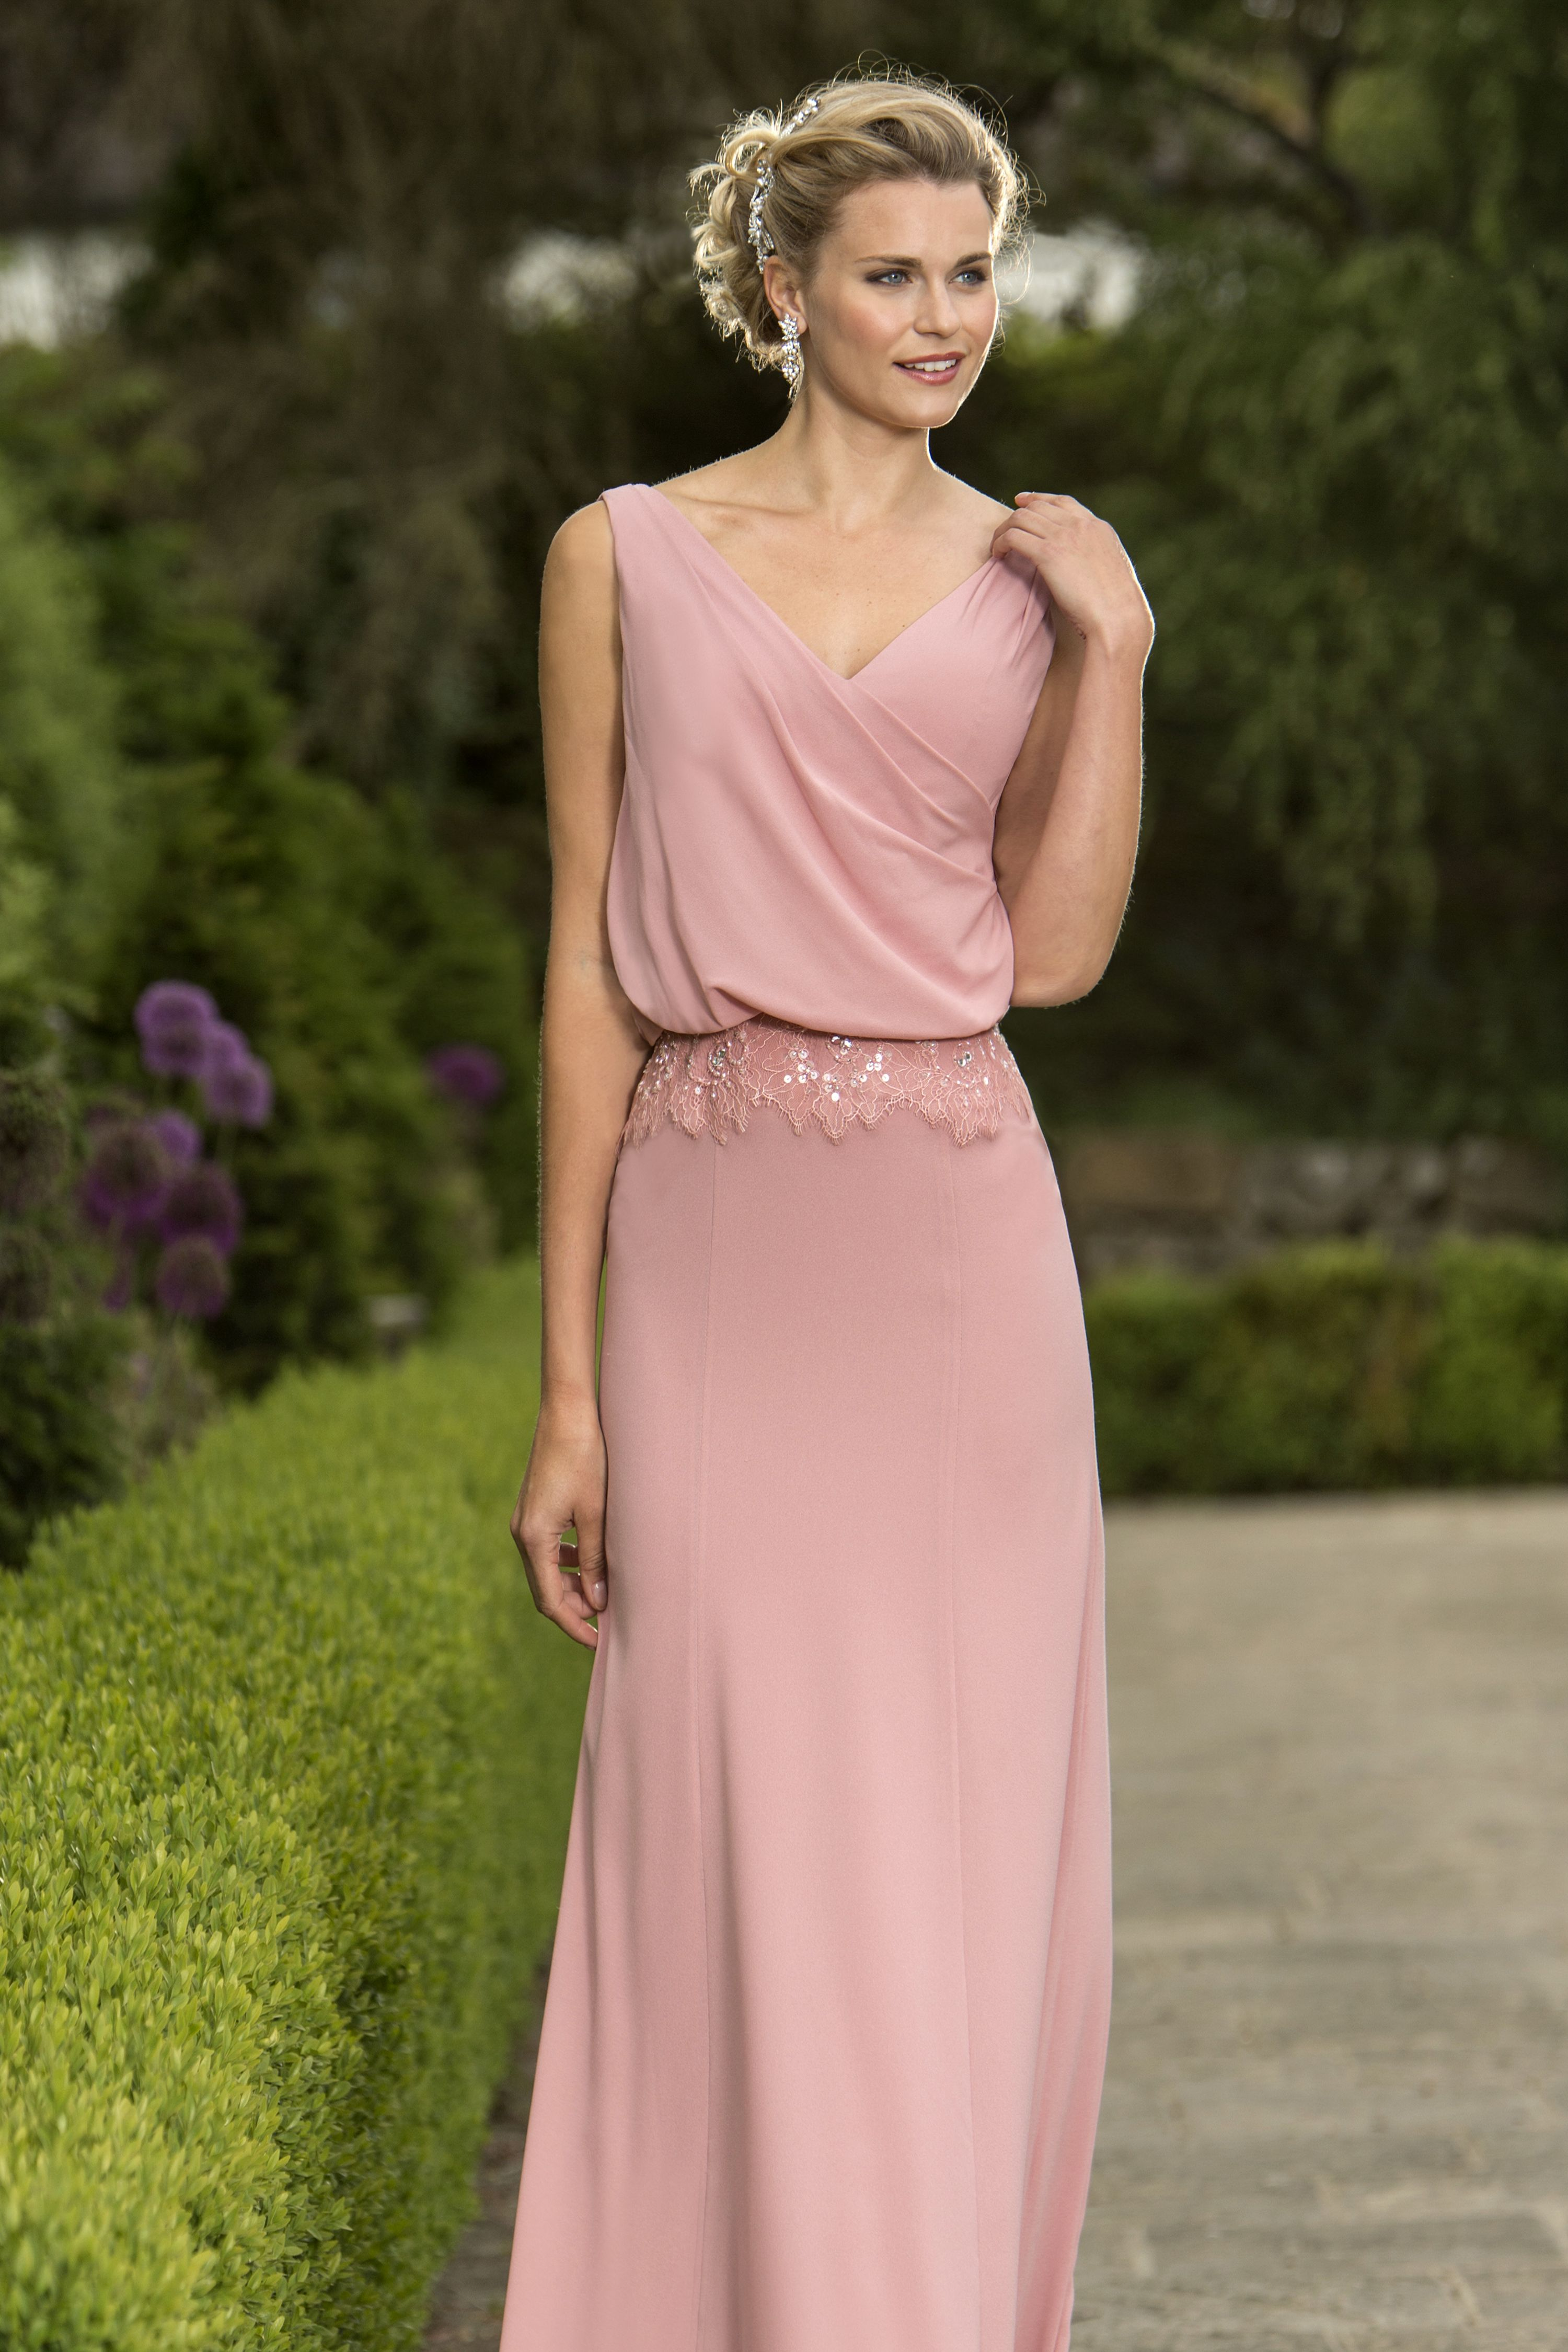 Juliette slim bridesmaid dress with blouson style bodice available juliette slim bridesmaid dress with blouson style bodice available in chiffon or georgette chiffon ombrellifo Image collections